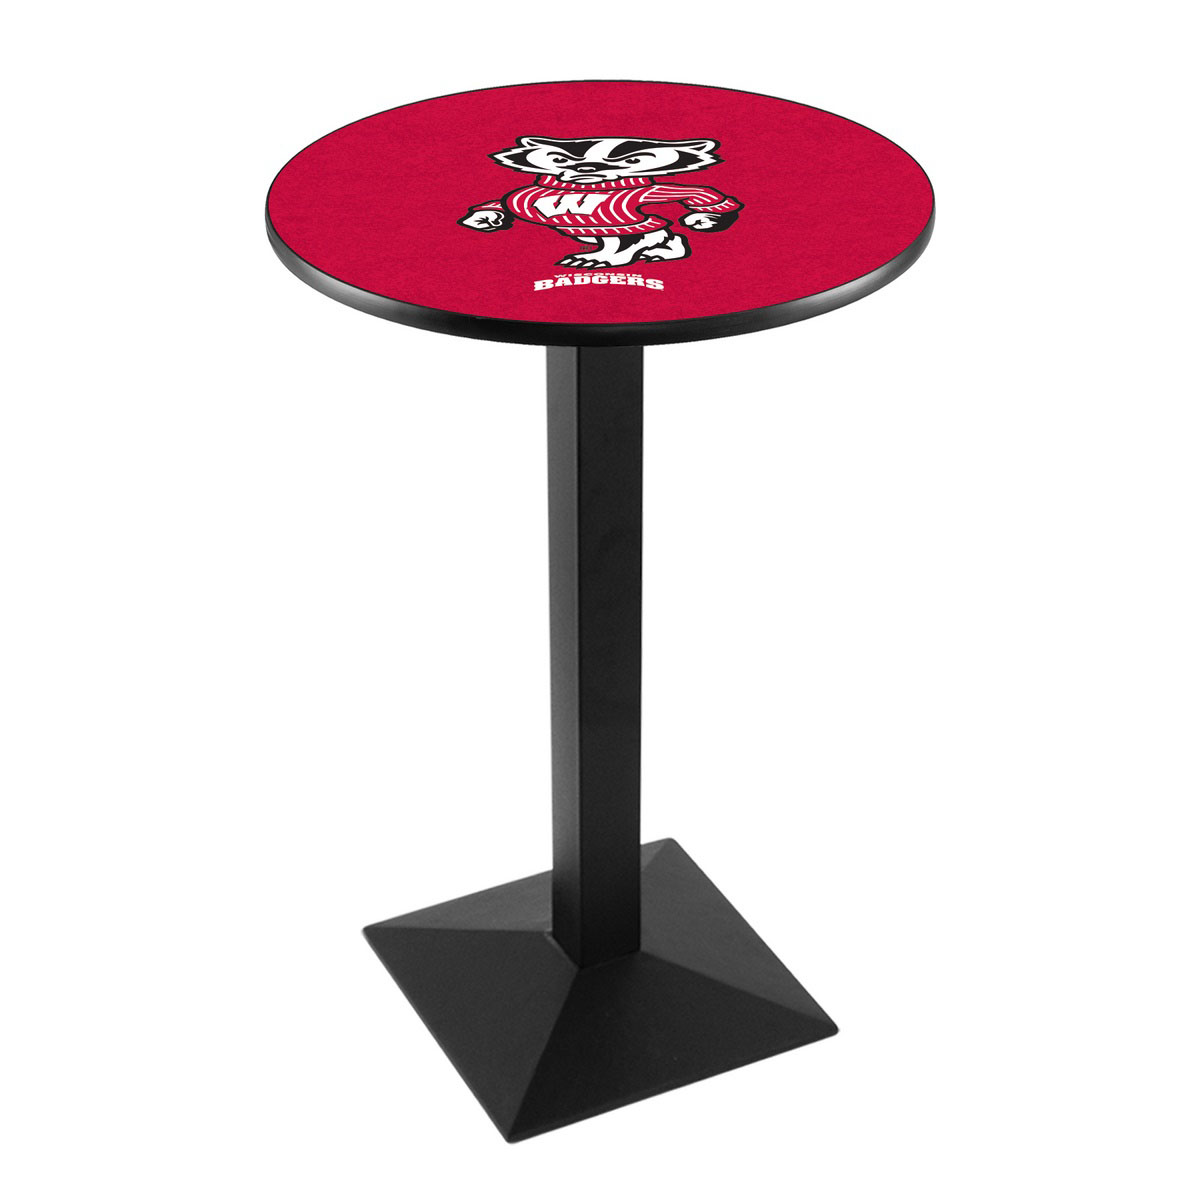 Magnificent University Wisconsin Badger Logo Pub Bar Table Square Stand Product Photo